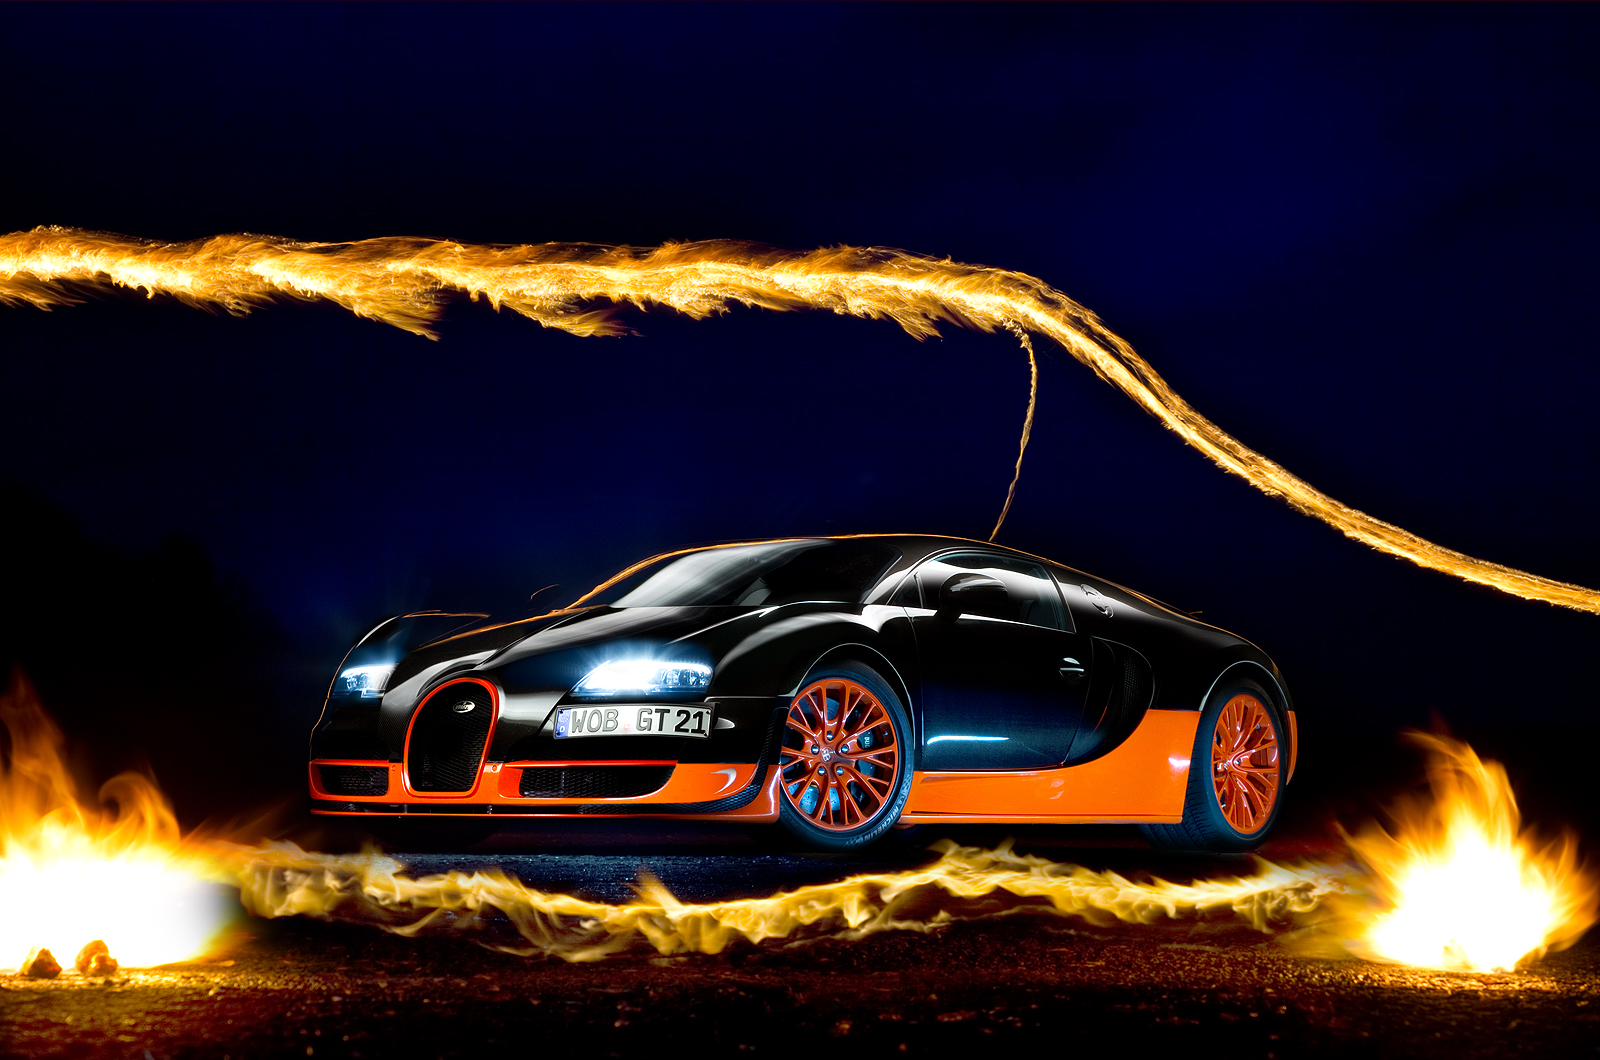 Bugatti Super Sport on The Veyron Omen Machine Wallpaper For Android